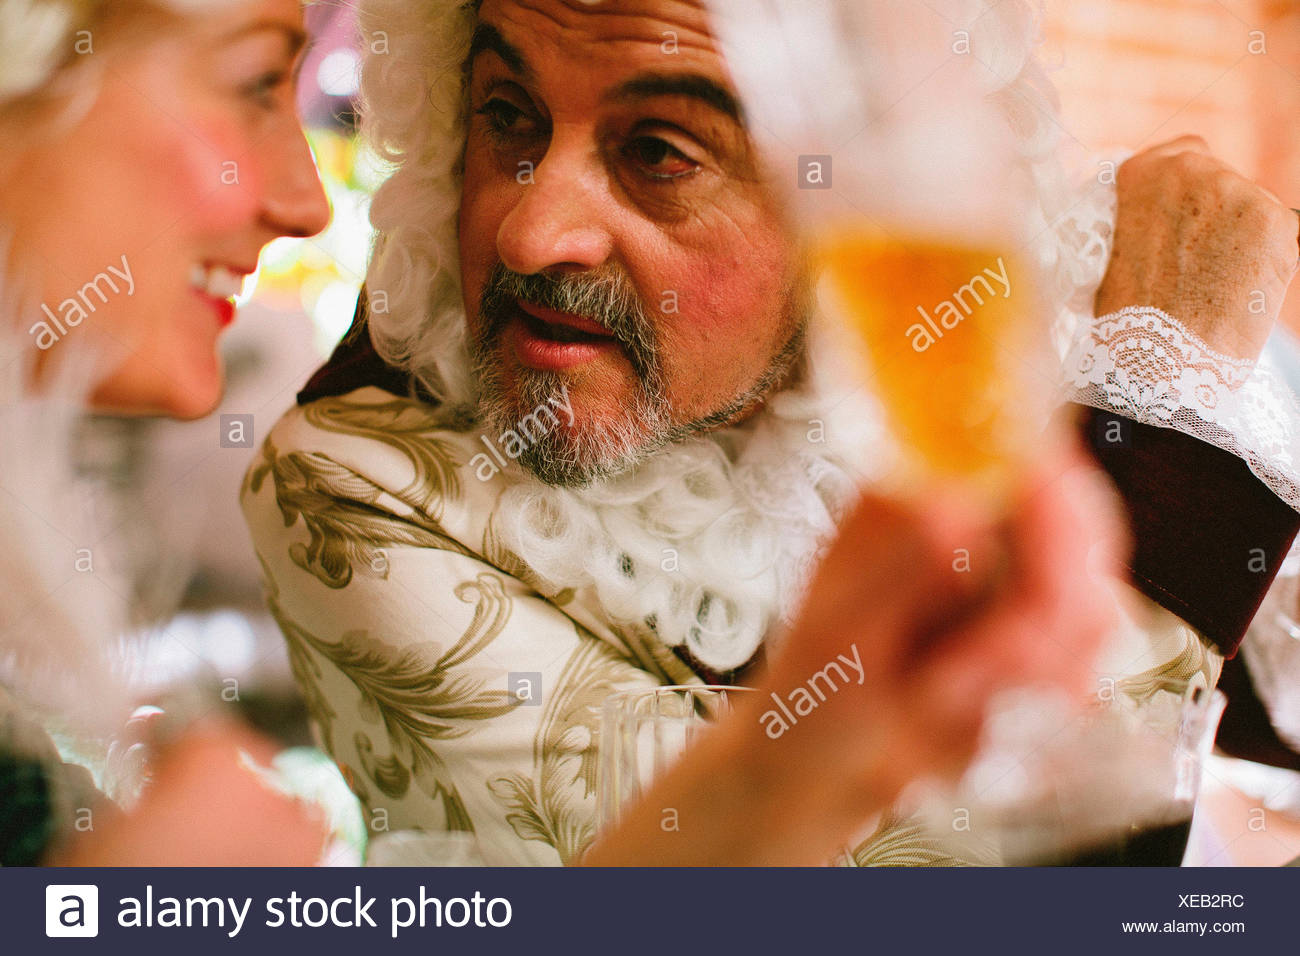 Man talks with woman during Victorian themed dinner. - Stock Image